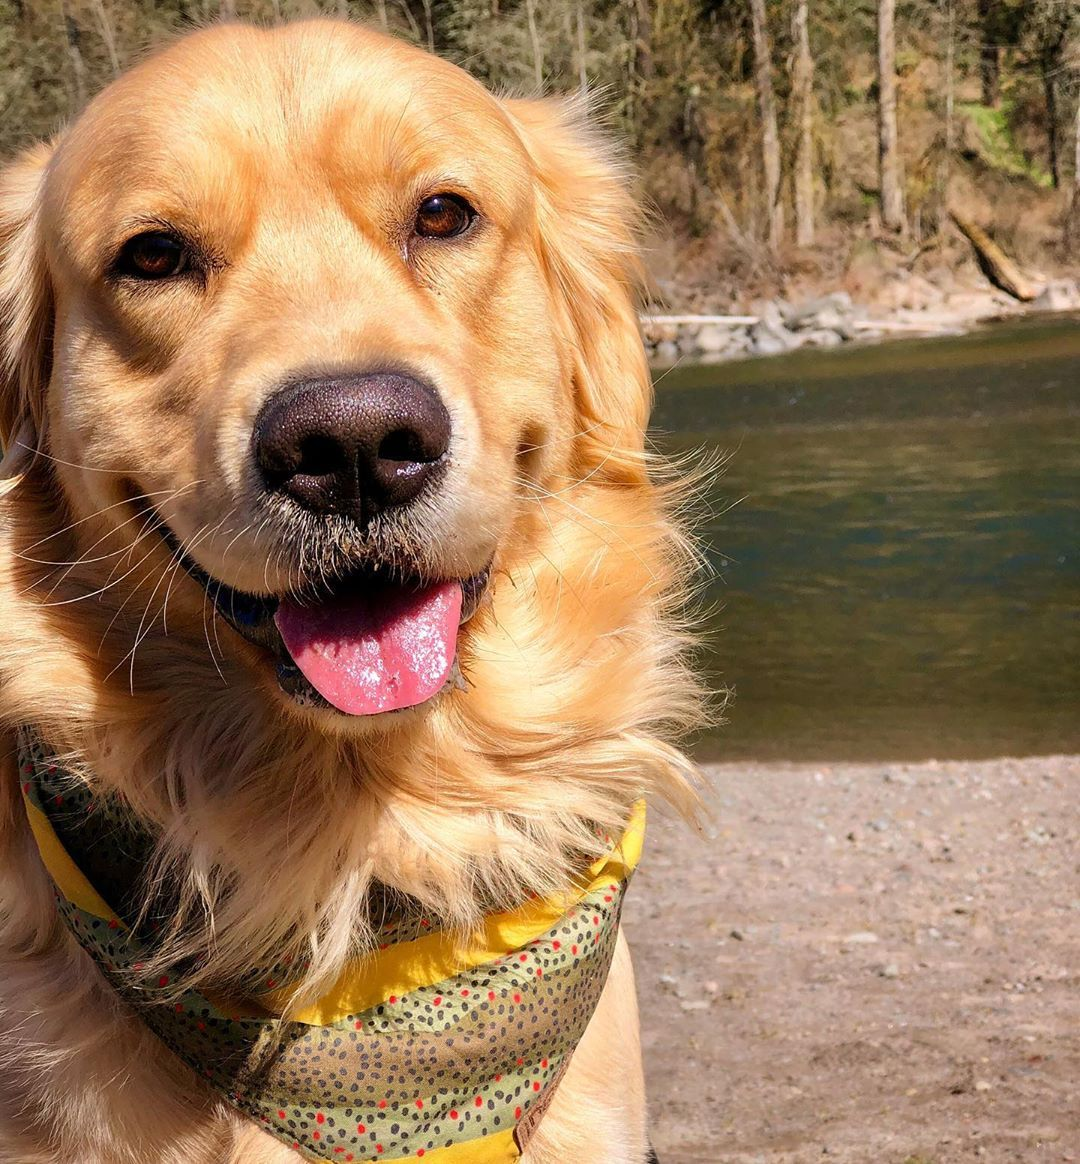 Lewis The Golden On Instagram No Such Thing As A Bad Day On The River Brown Tro Canine Companions Golden Dog Golden Retriever